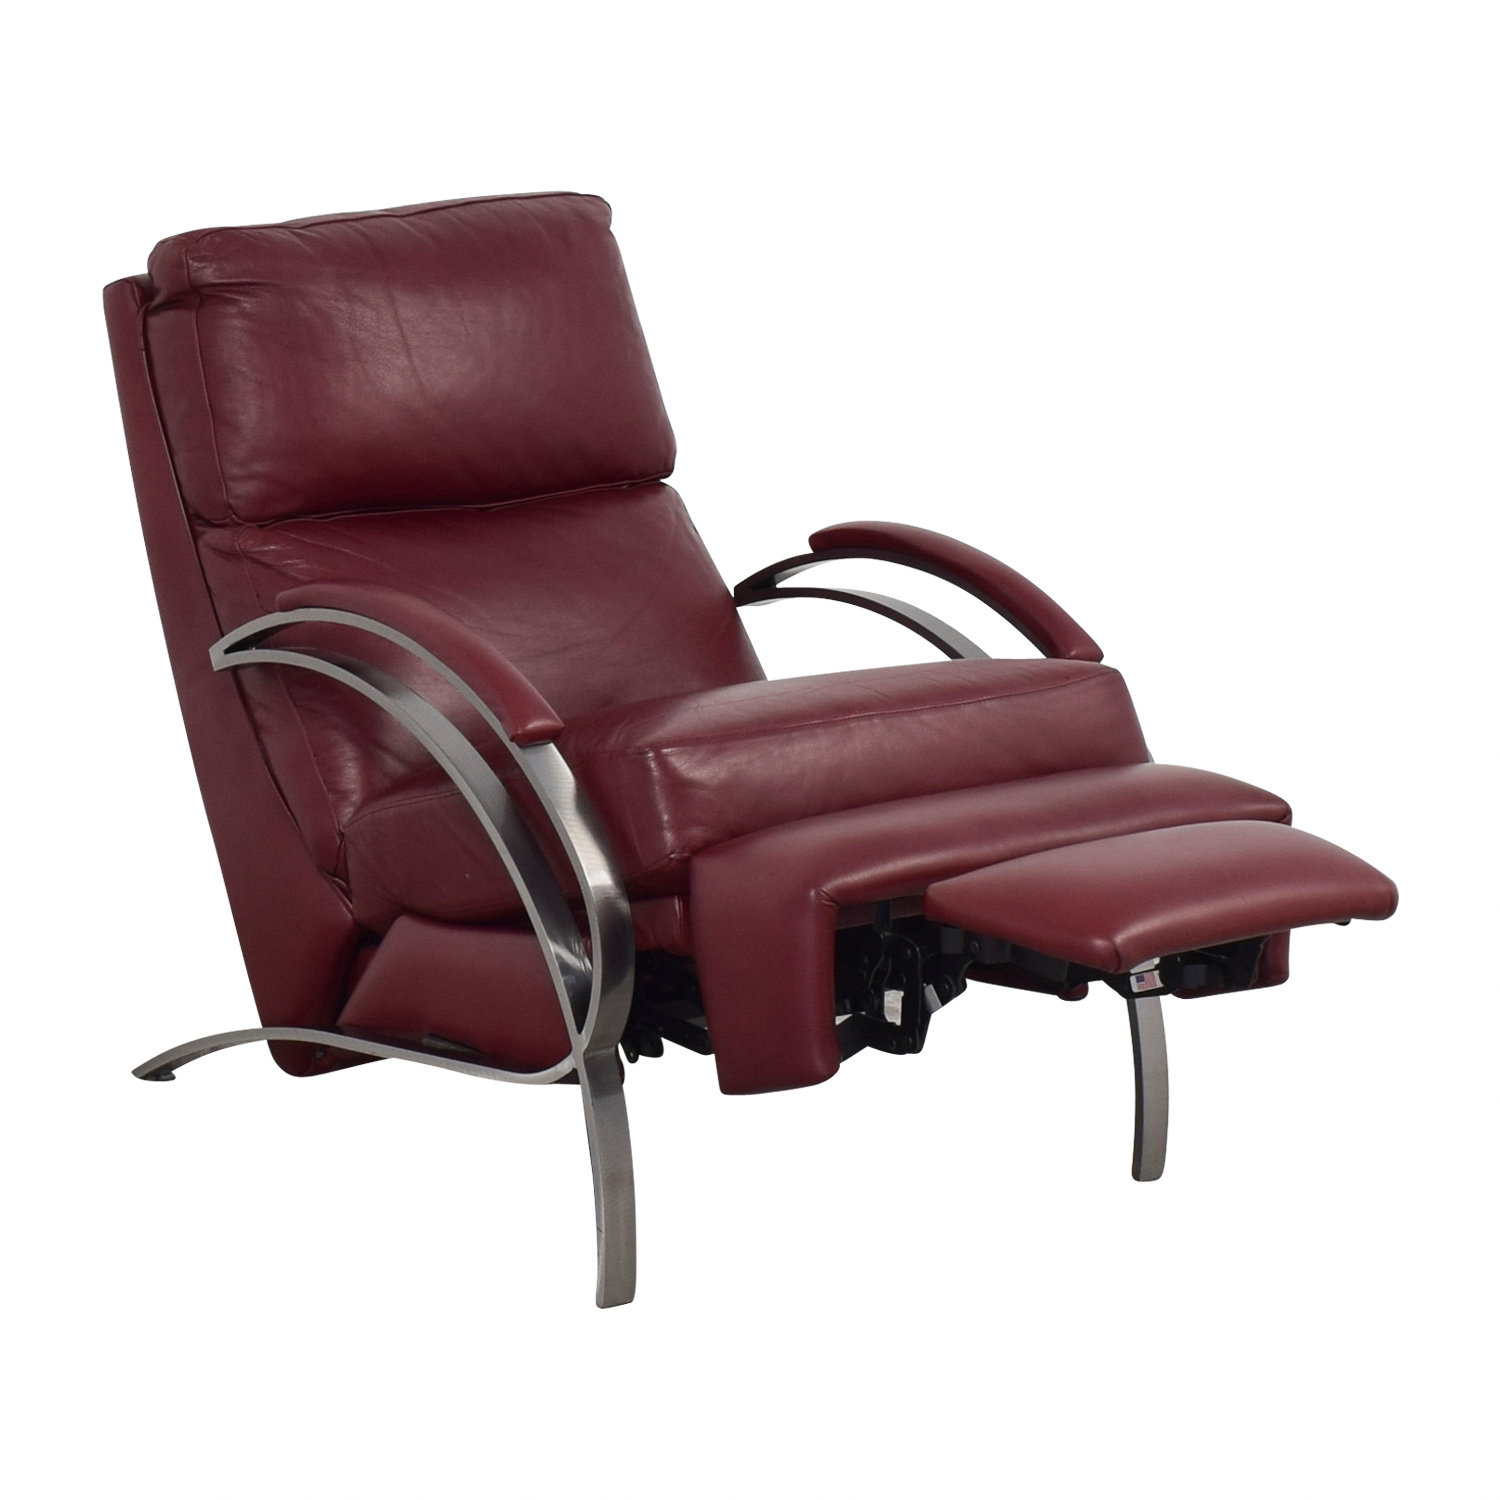 Bloomingdale's Bloomingdale's Loop Recliner for sale